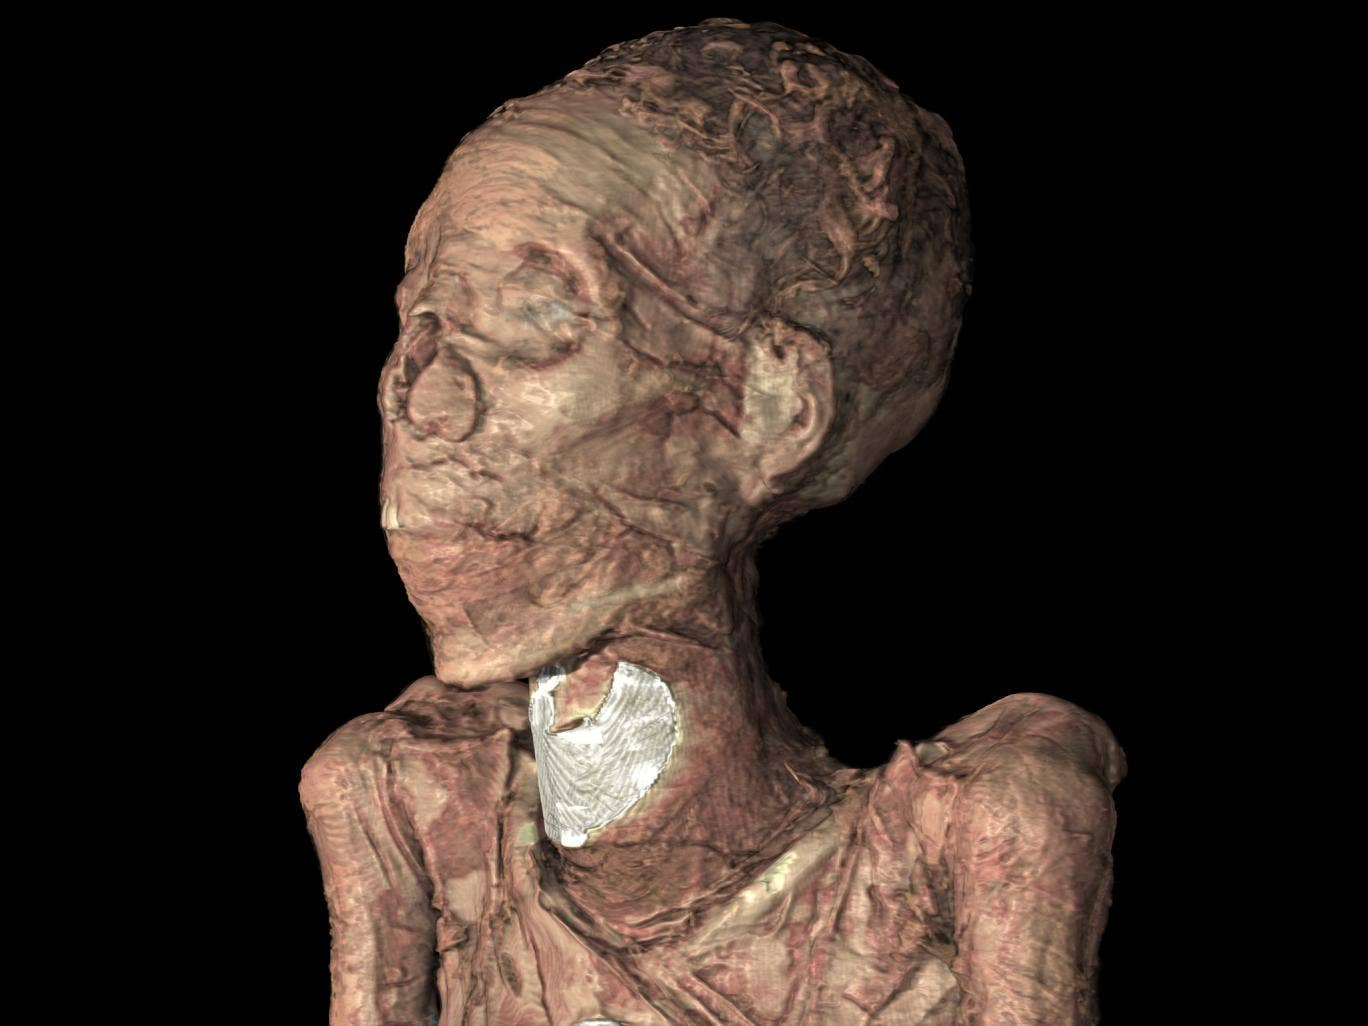 A 3D model of Egyptian chantress Tamut's face